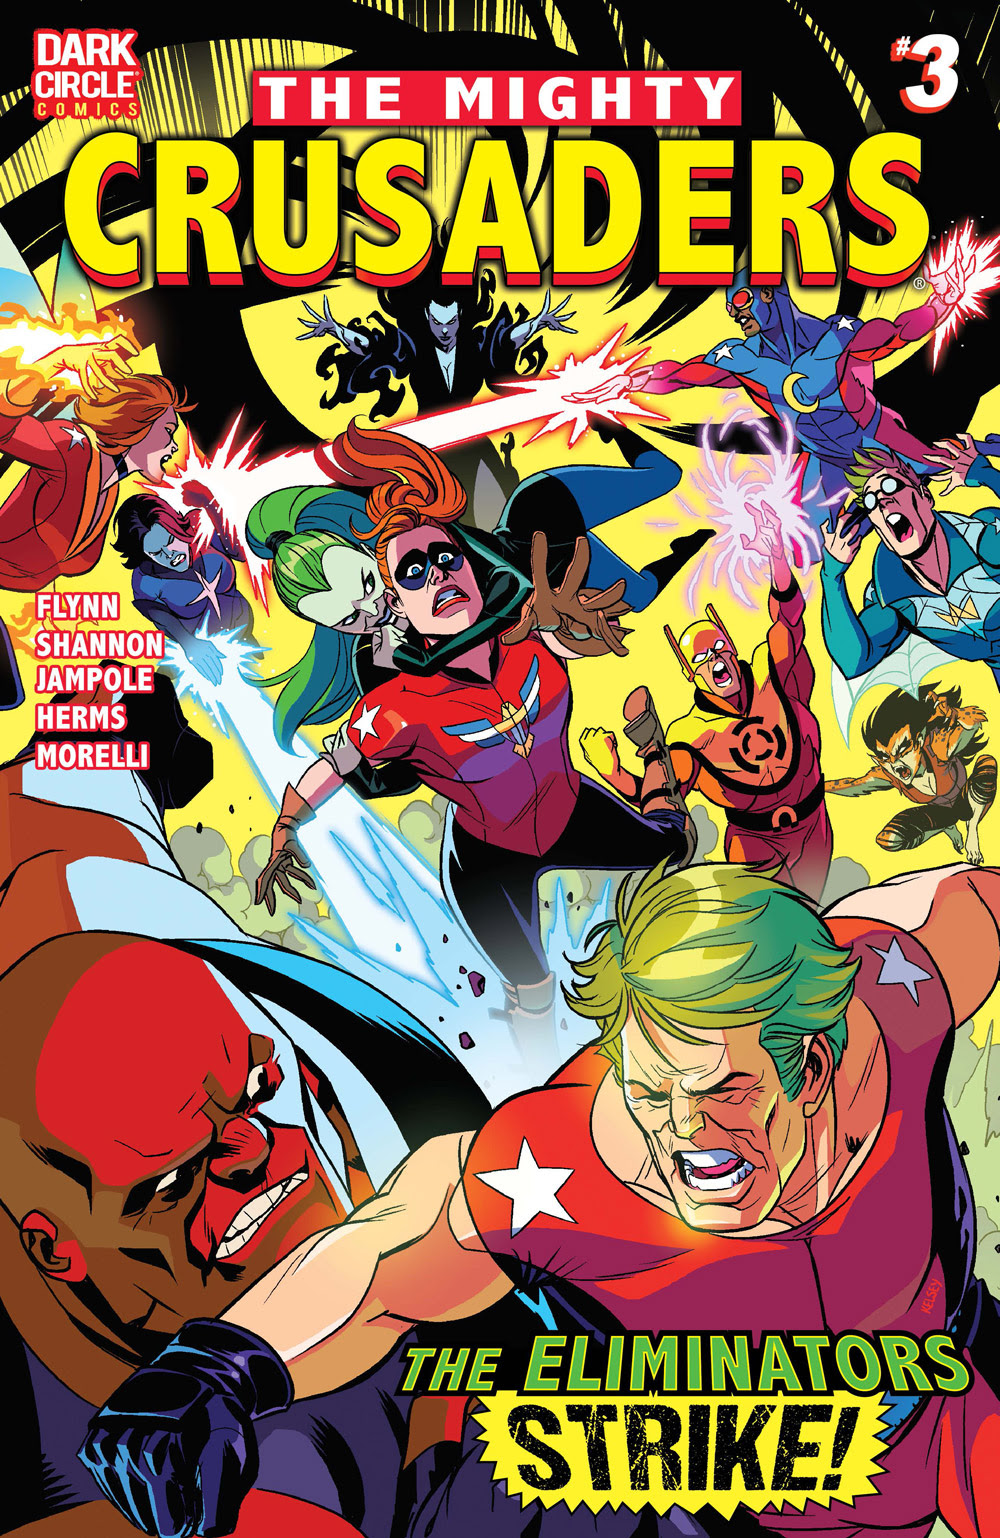 The Mighty Crusaders #3 CVR A: Shannon